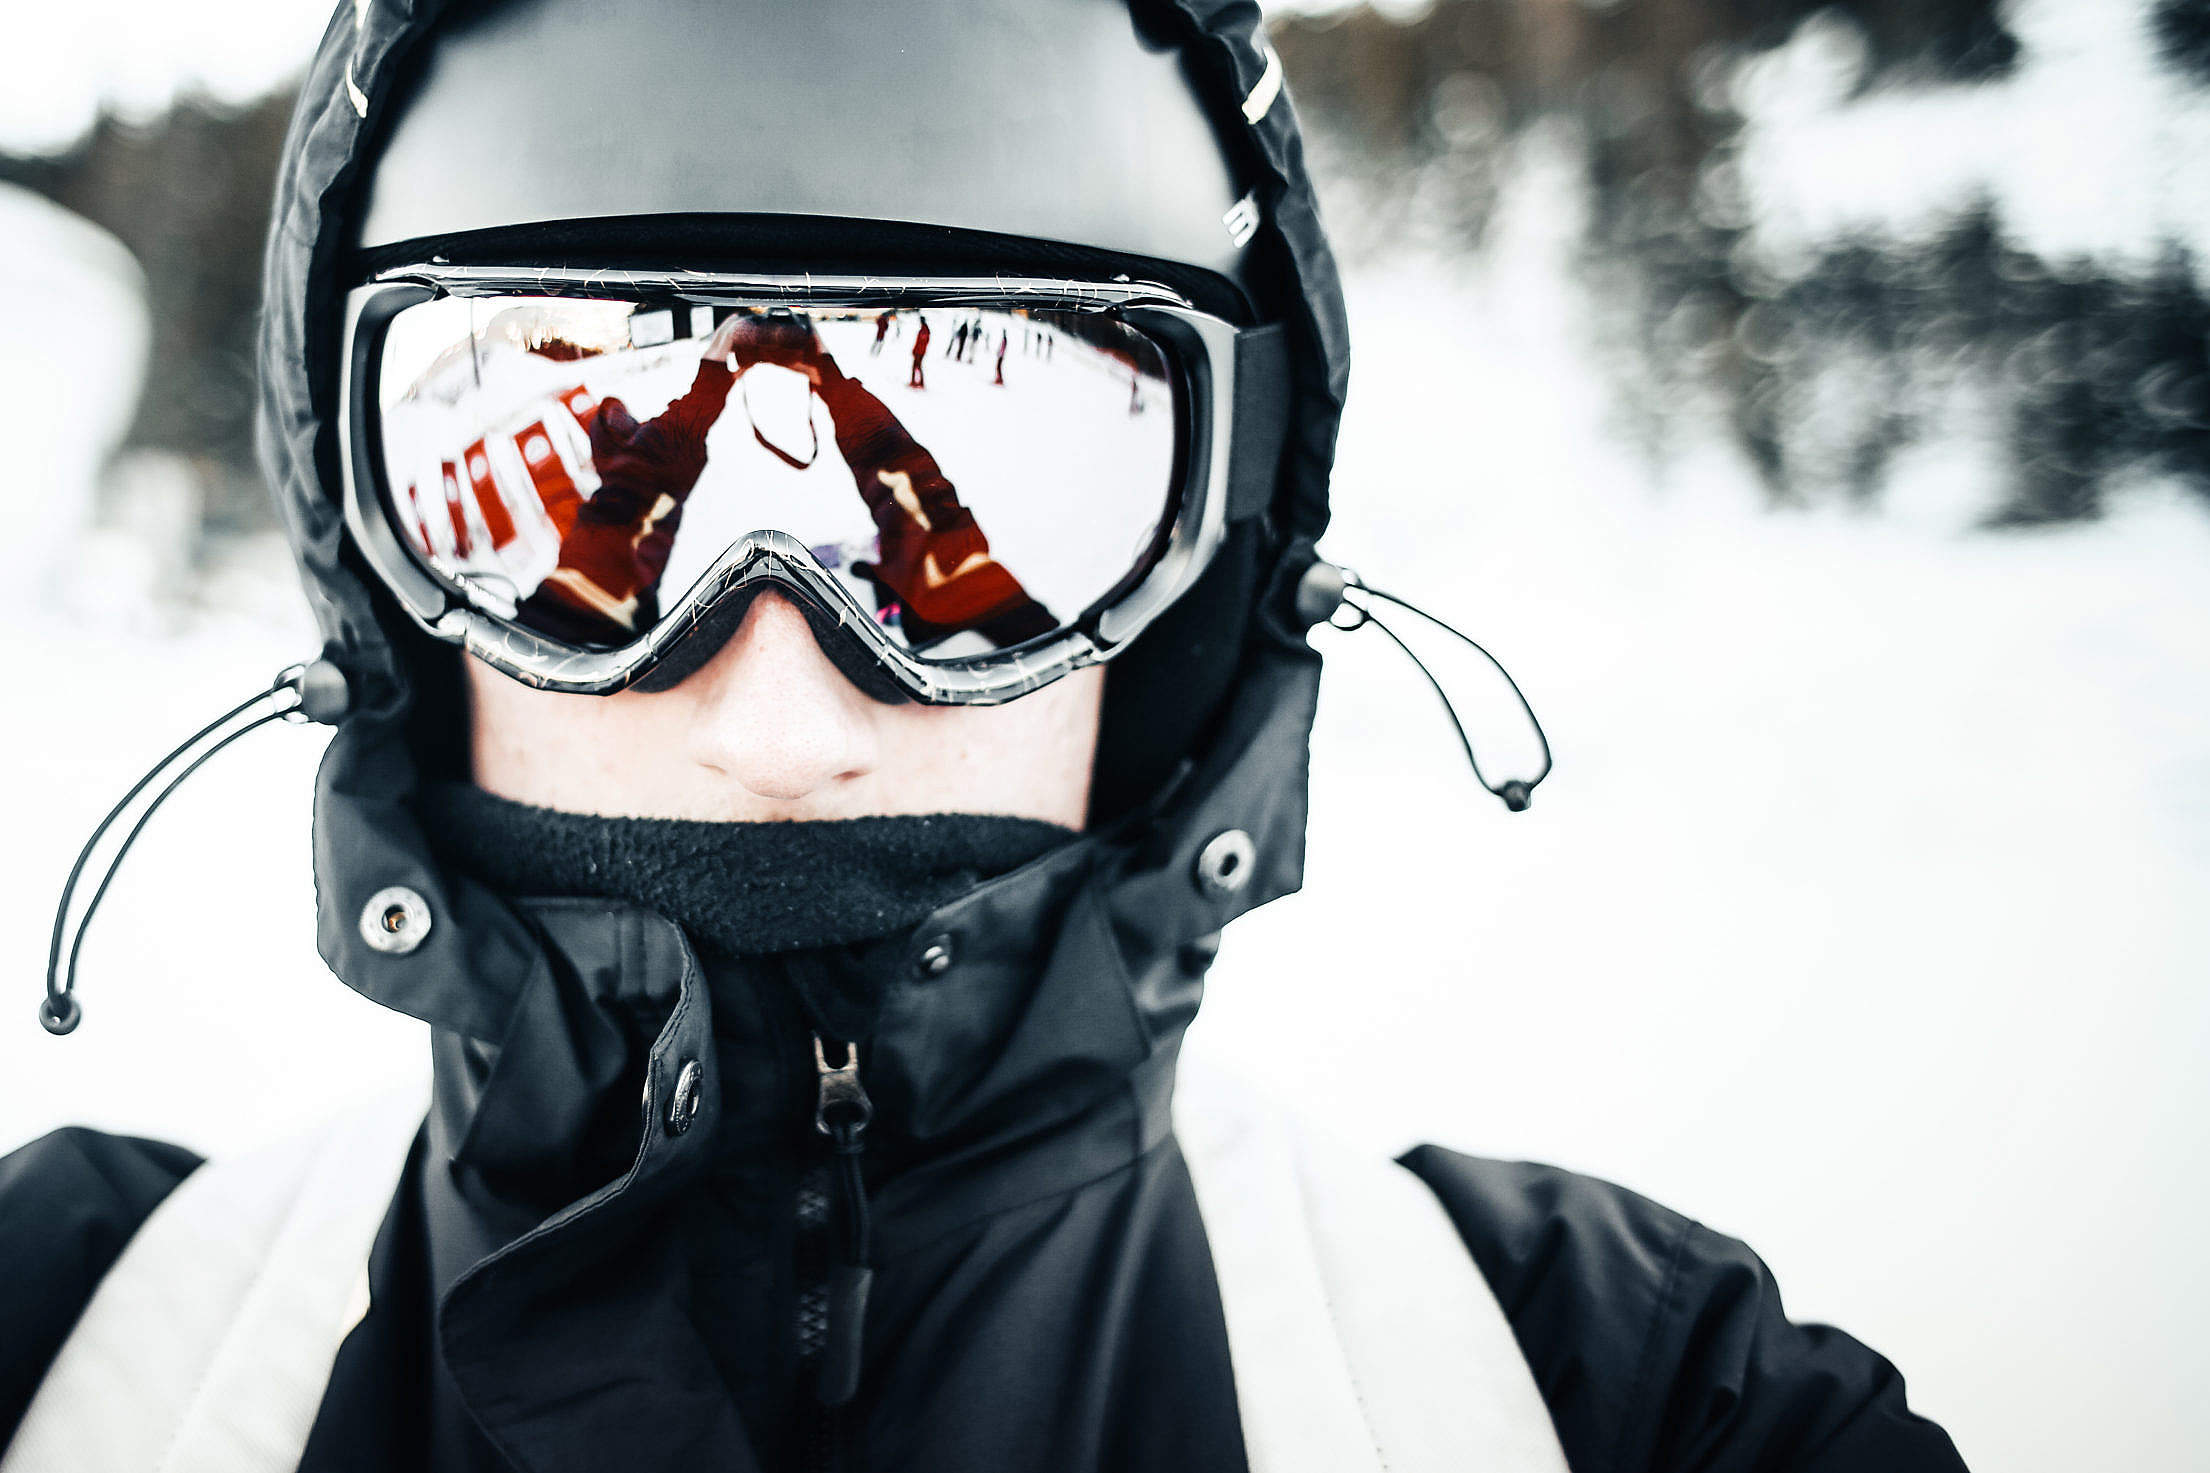 Download Skier Portrait Free Stock Photo